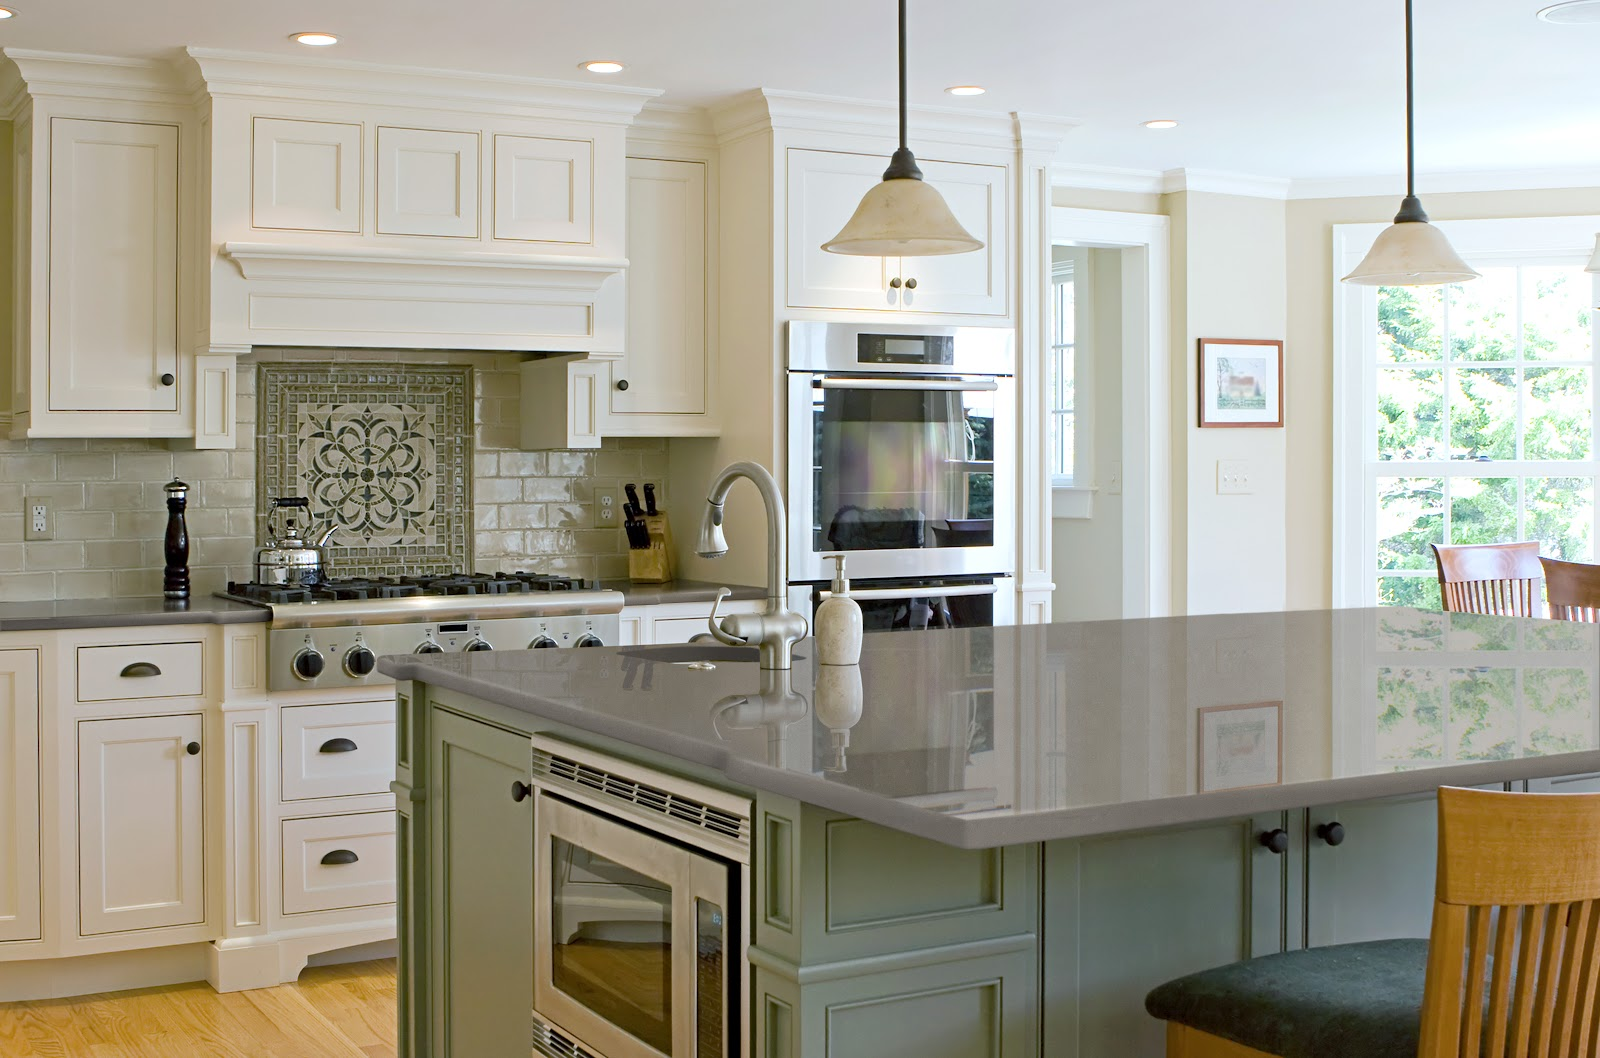 Kitchen Countertop Colors Pictures Ideas From Hgtv: The Architectural Surface Expert: Elements Featured On